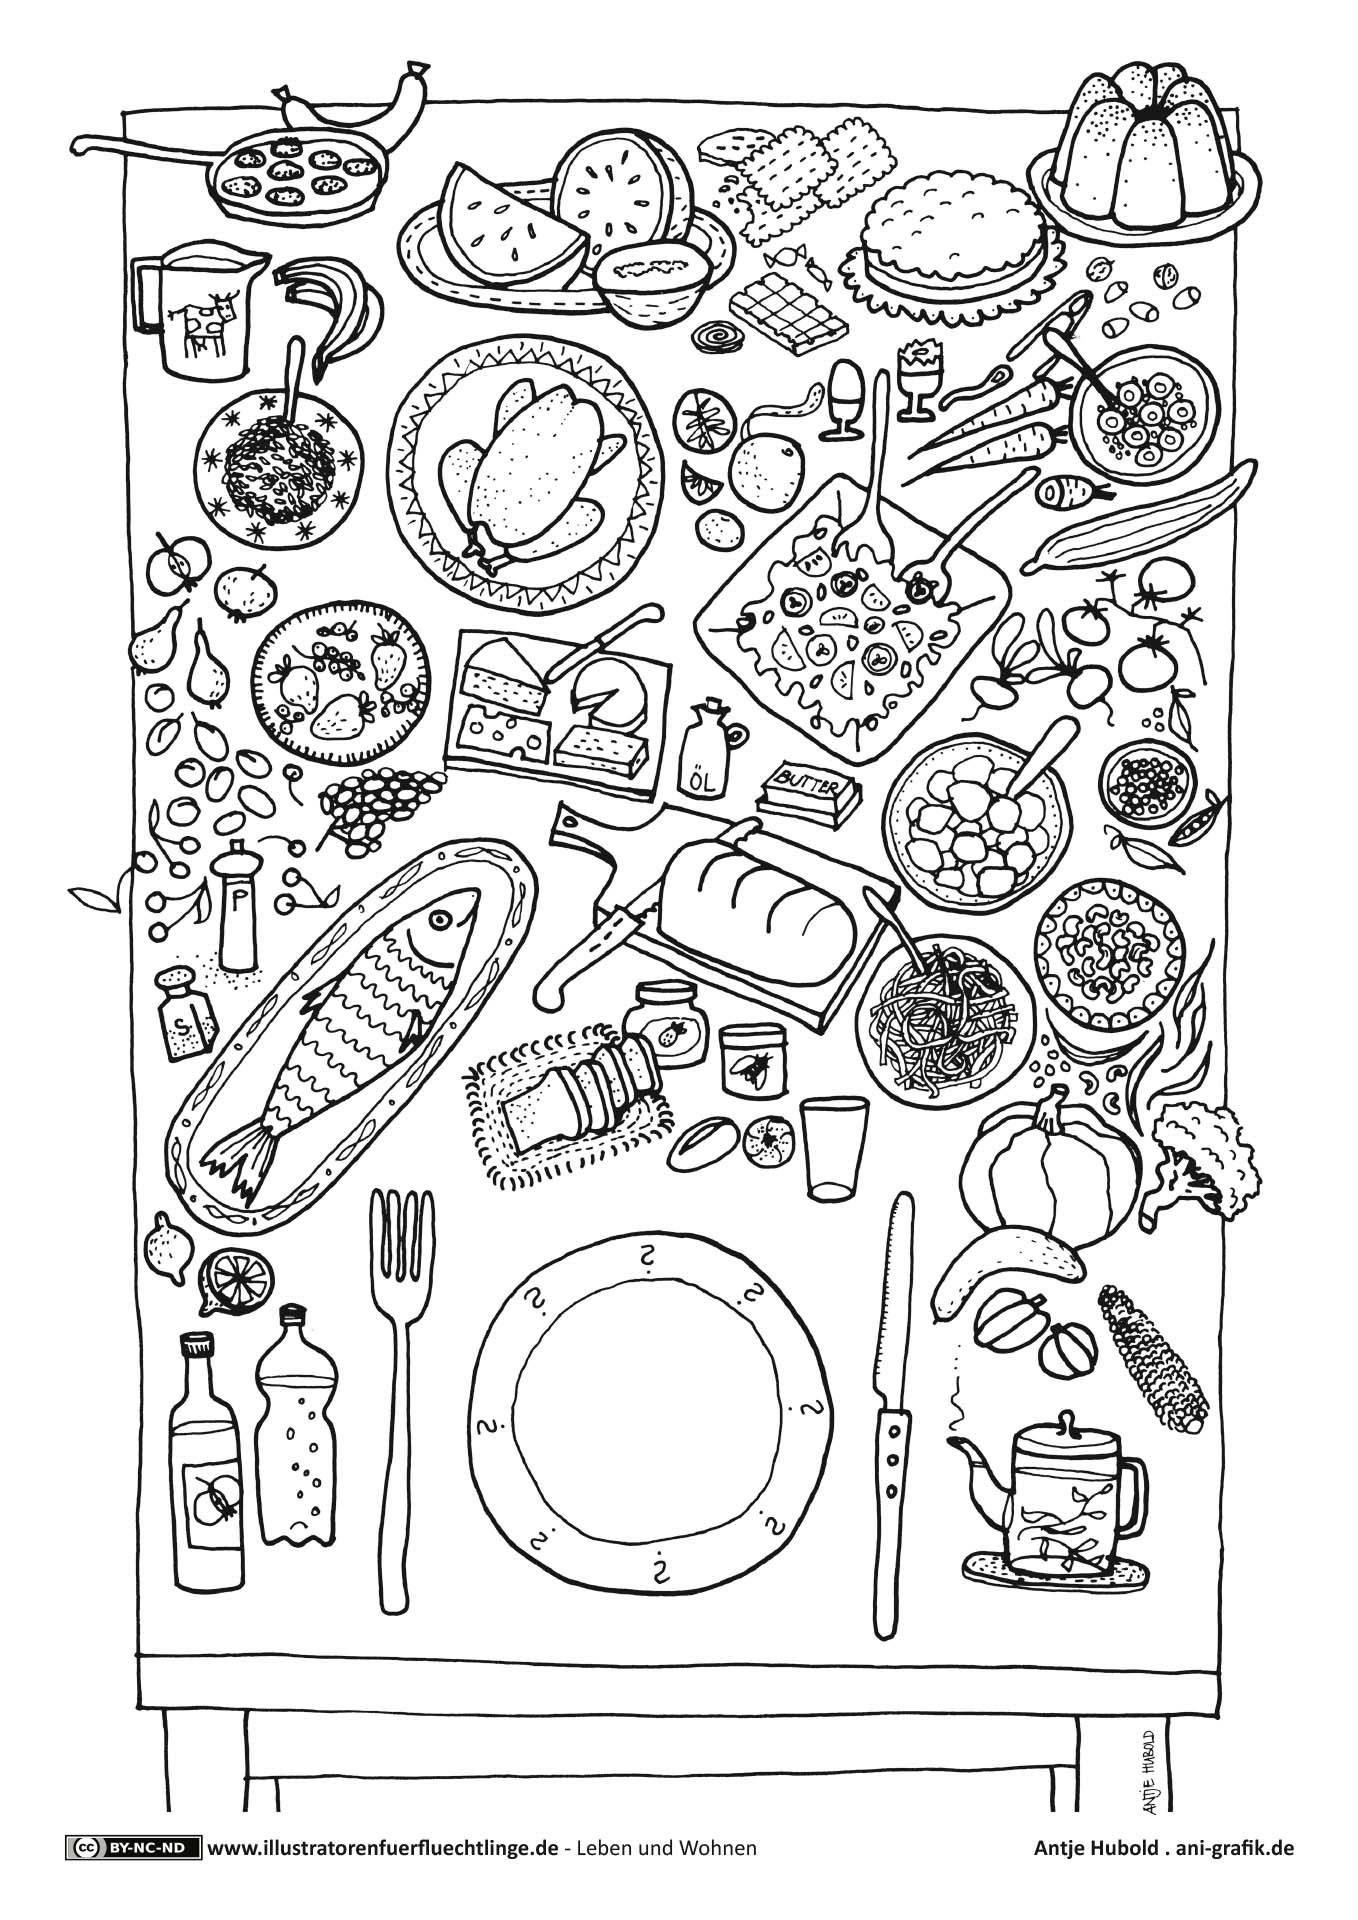 Pin By Cris Pereira On Imprimir Food Coloring Pages Prints Print